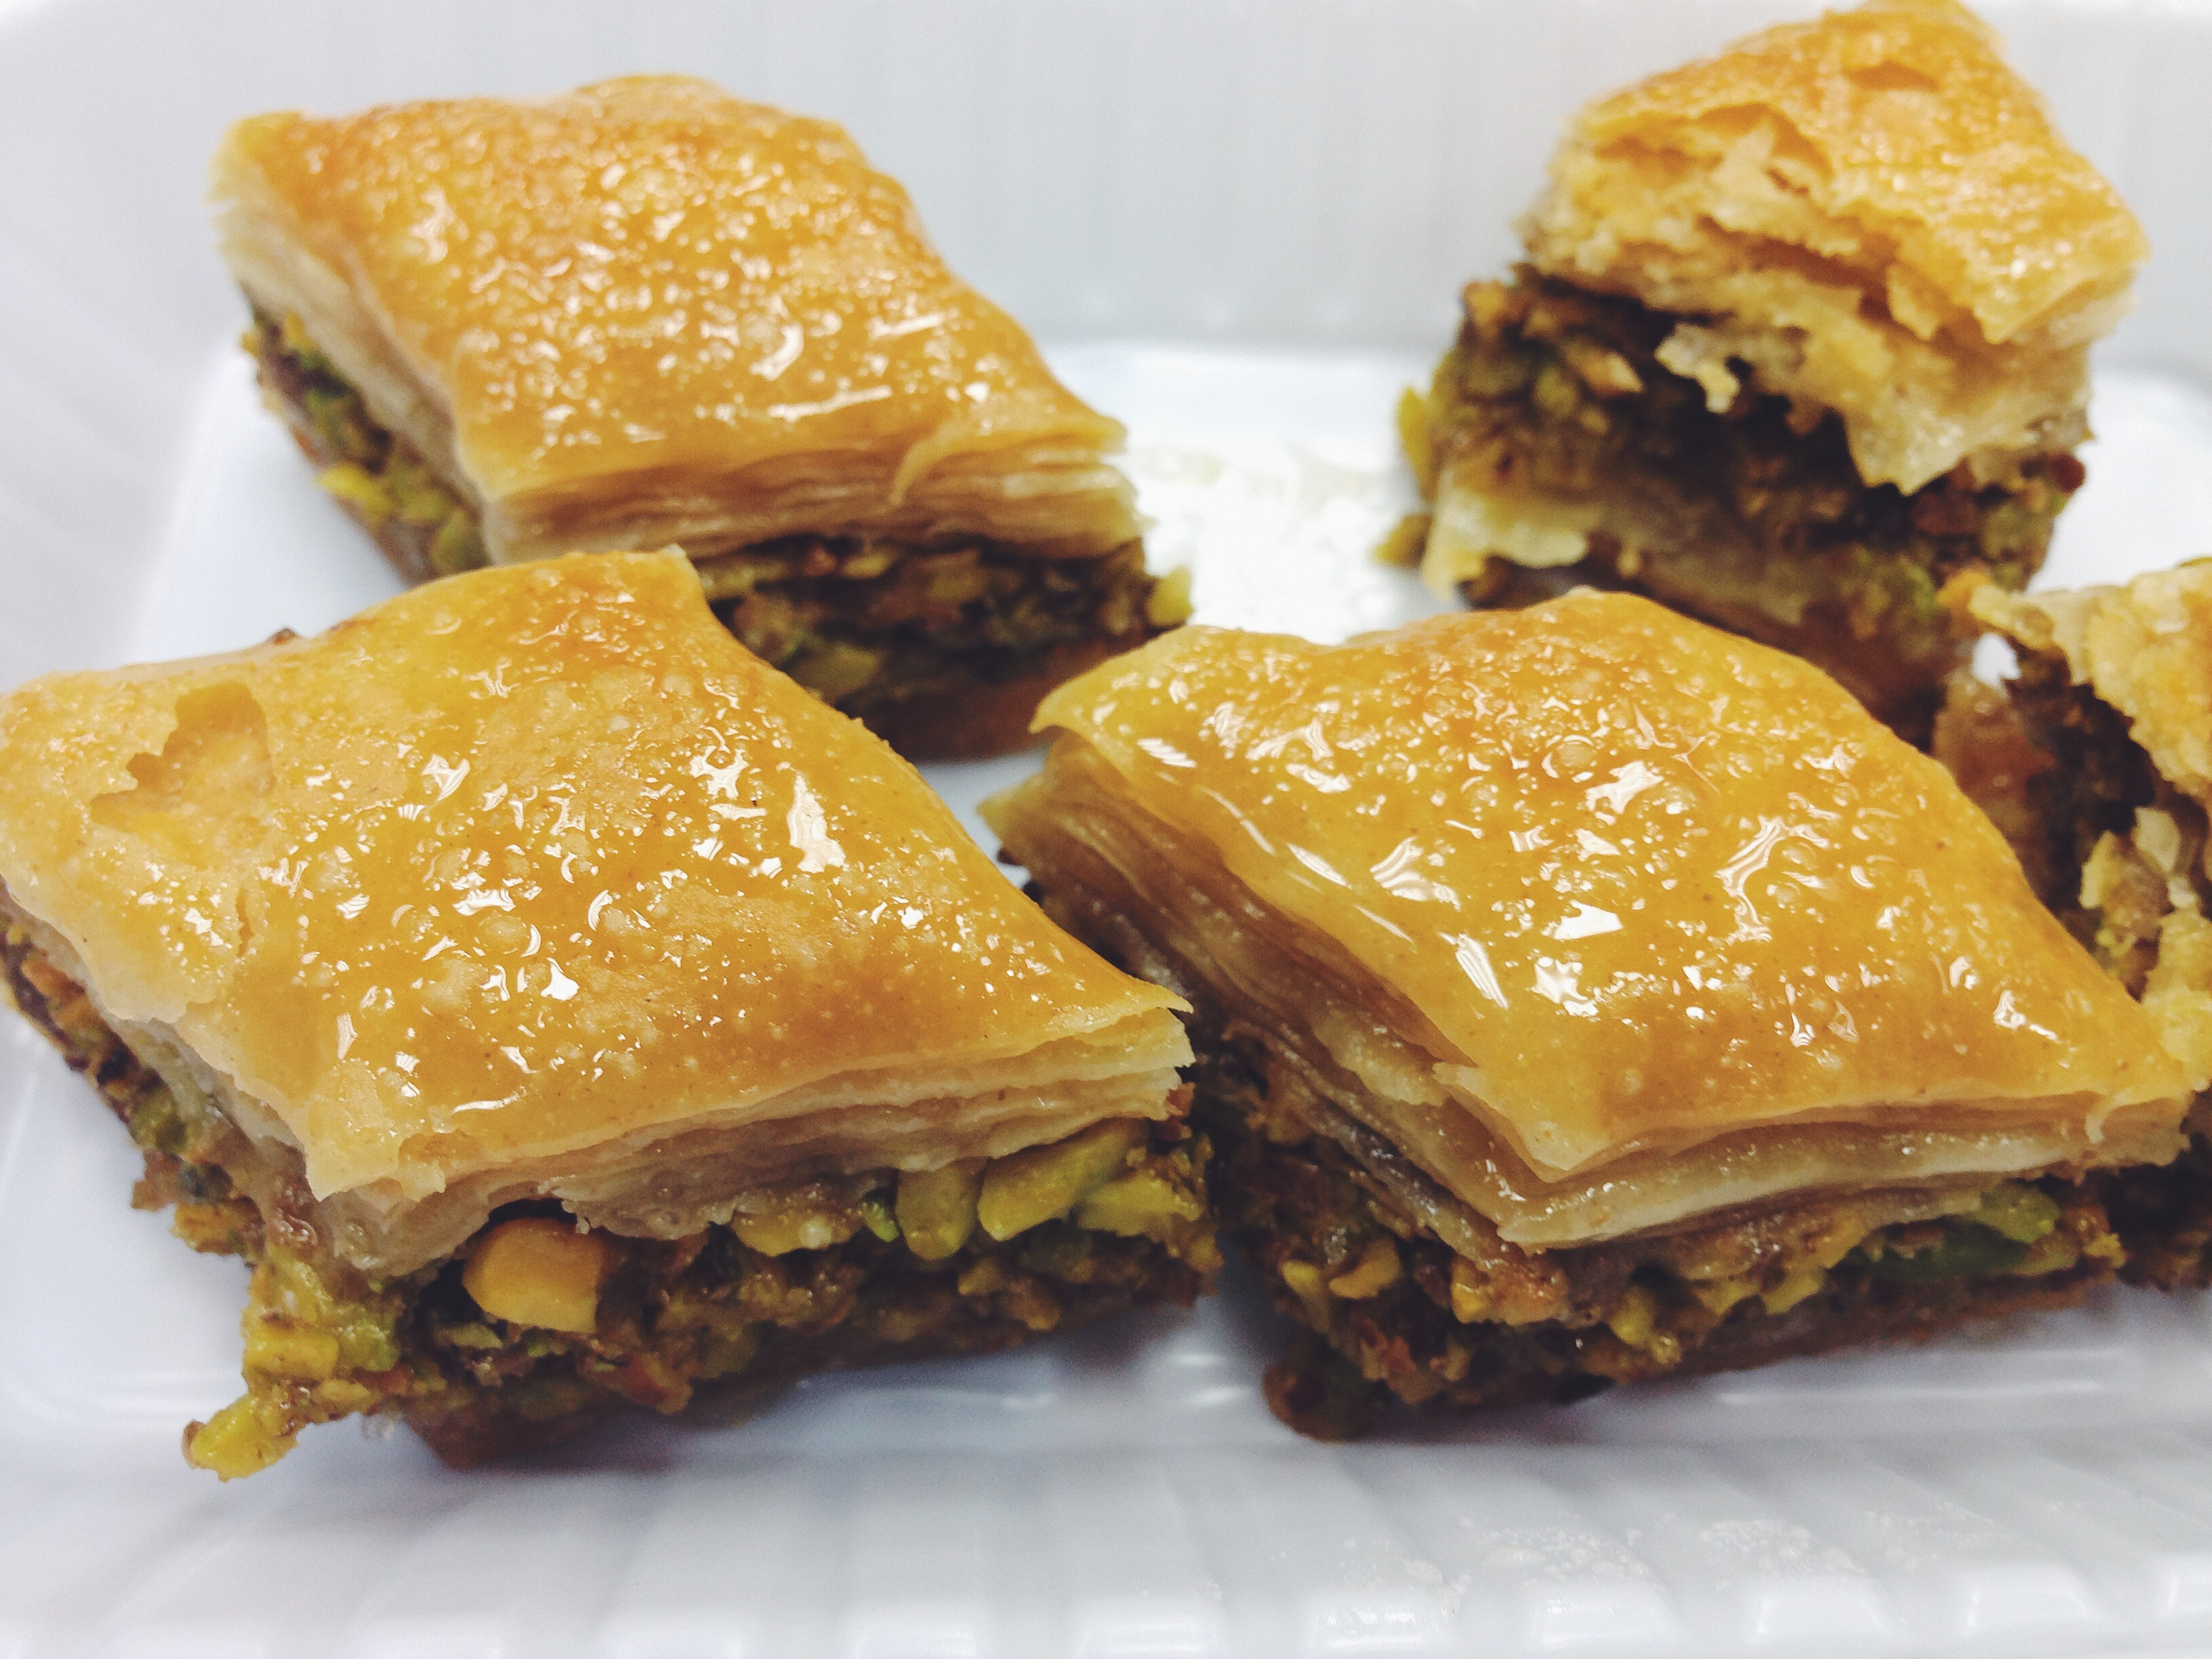 Al Reef Lebanese Bakery | Find Me A Break